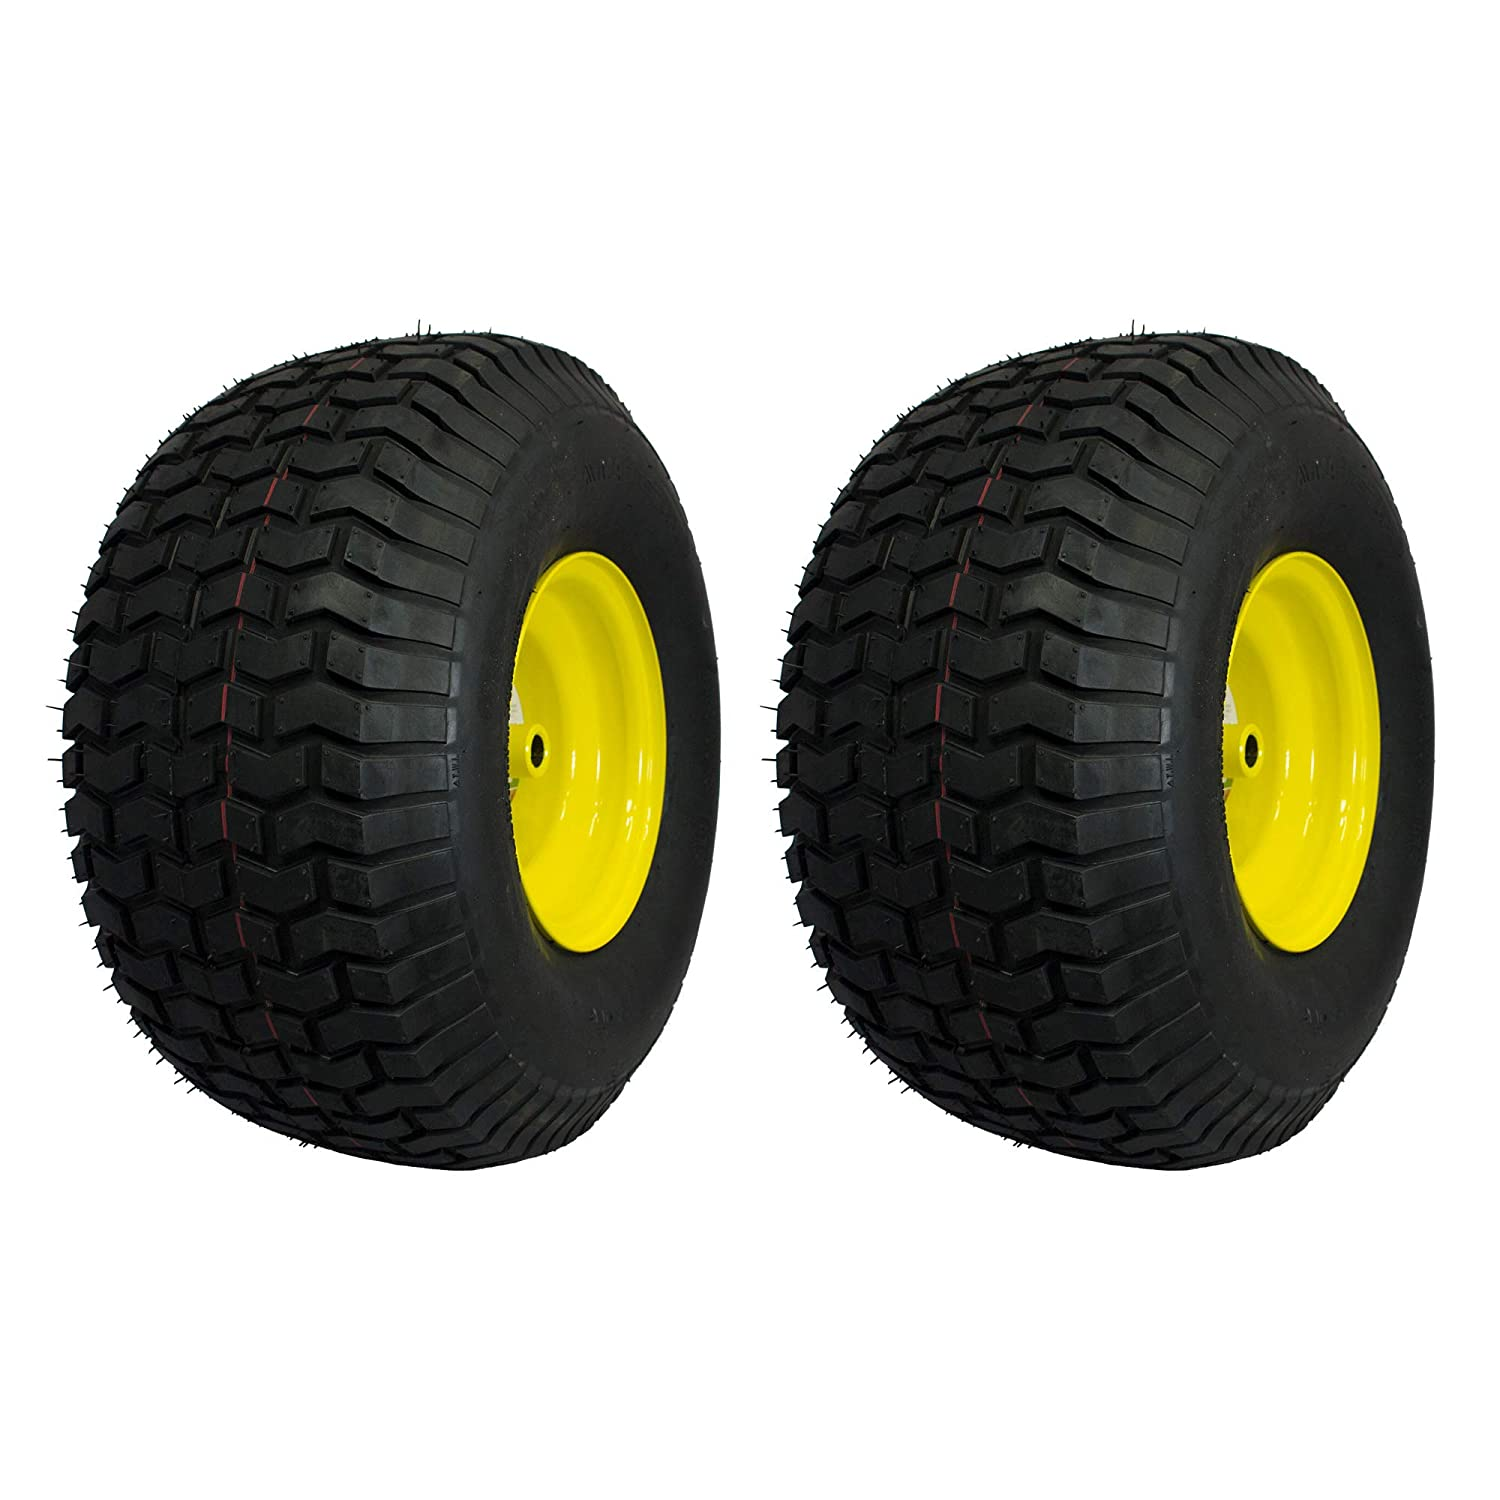 MARASTAR 21424 20X8.00-8 Rear Tire Assembly Replacement for John Deere Riding Mowers, 1 Pack, Yellow